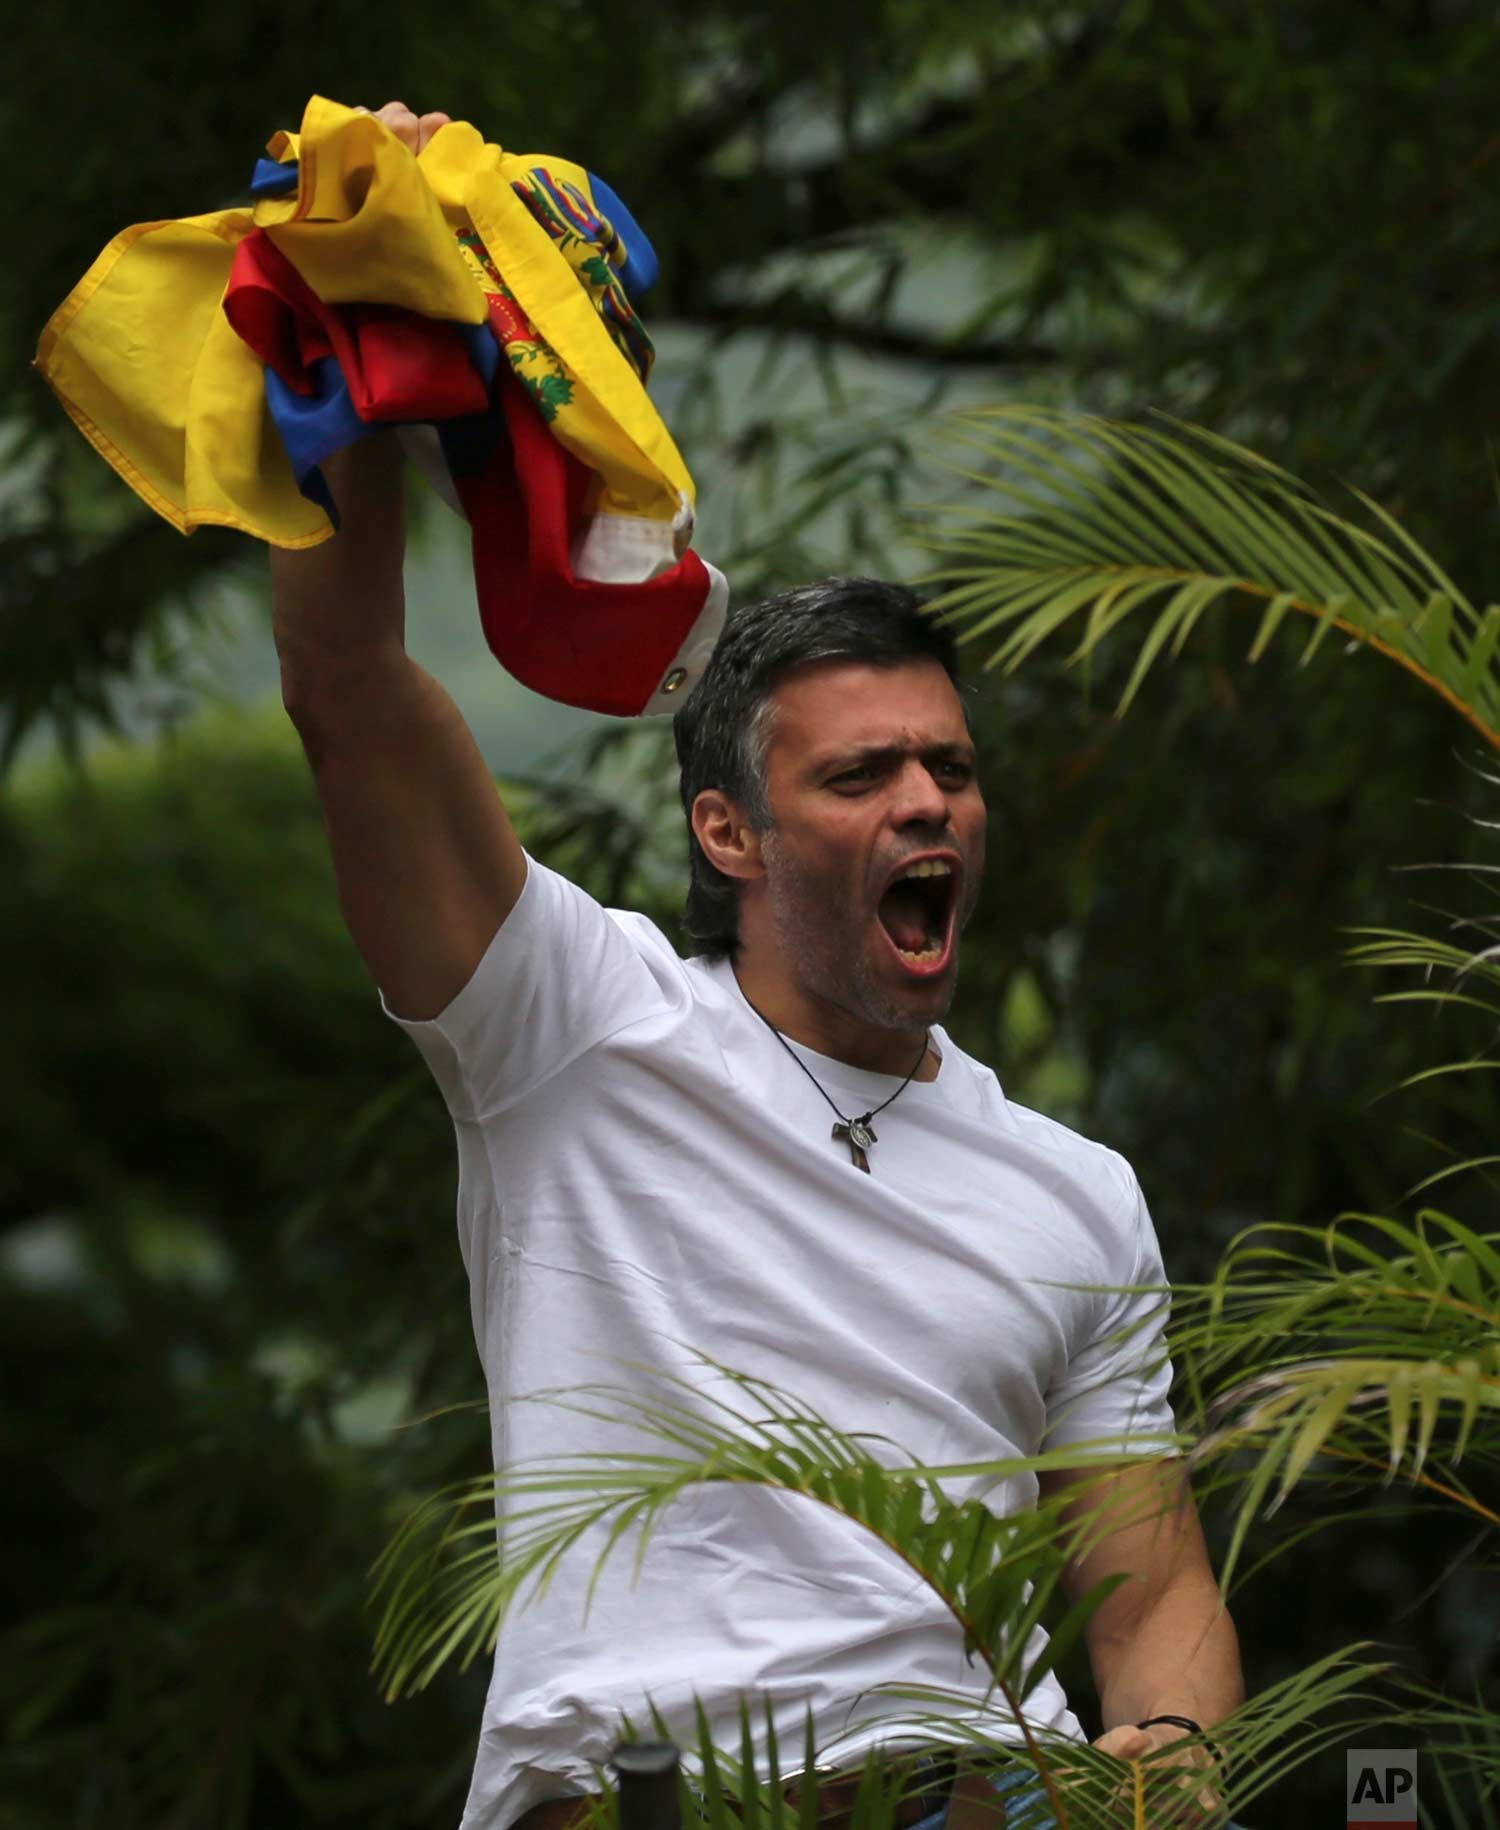 Opposition leader Leopoldo Lopez holds up a Venezuelan national flag as he greets supporters outside his home in Caracas, Venezuela, July 8, 2017 photo. (AP Photo/Fernando Llano)